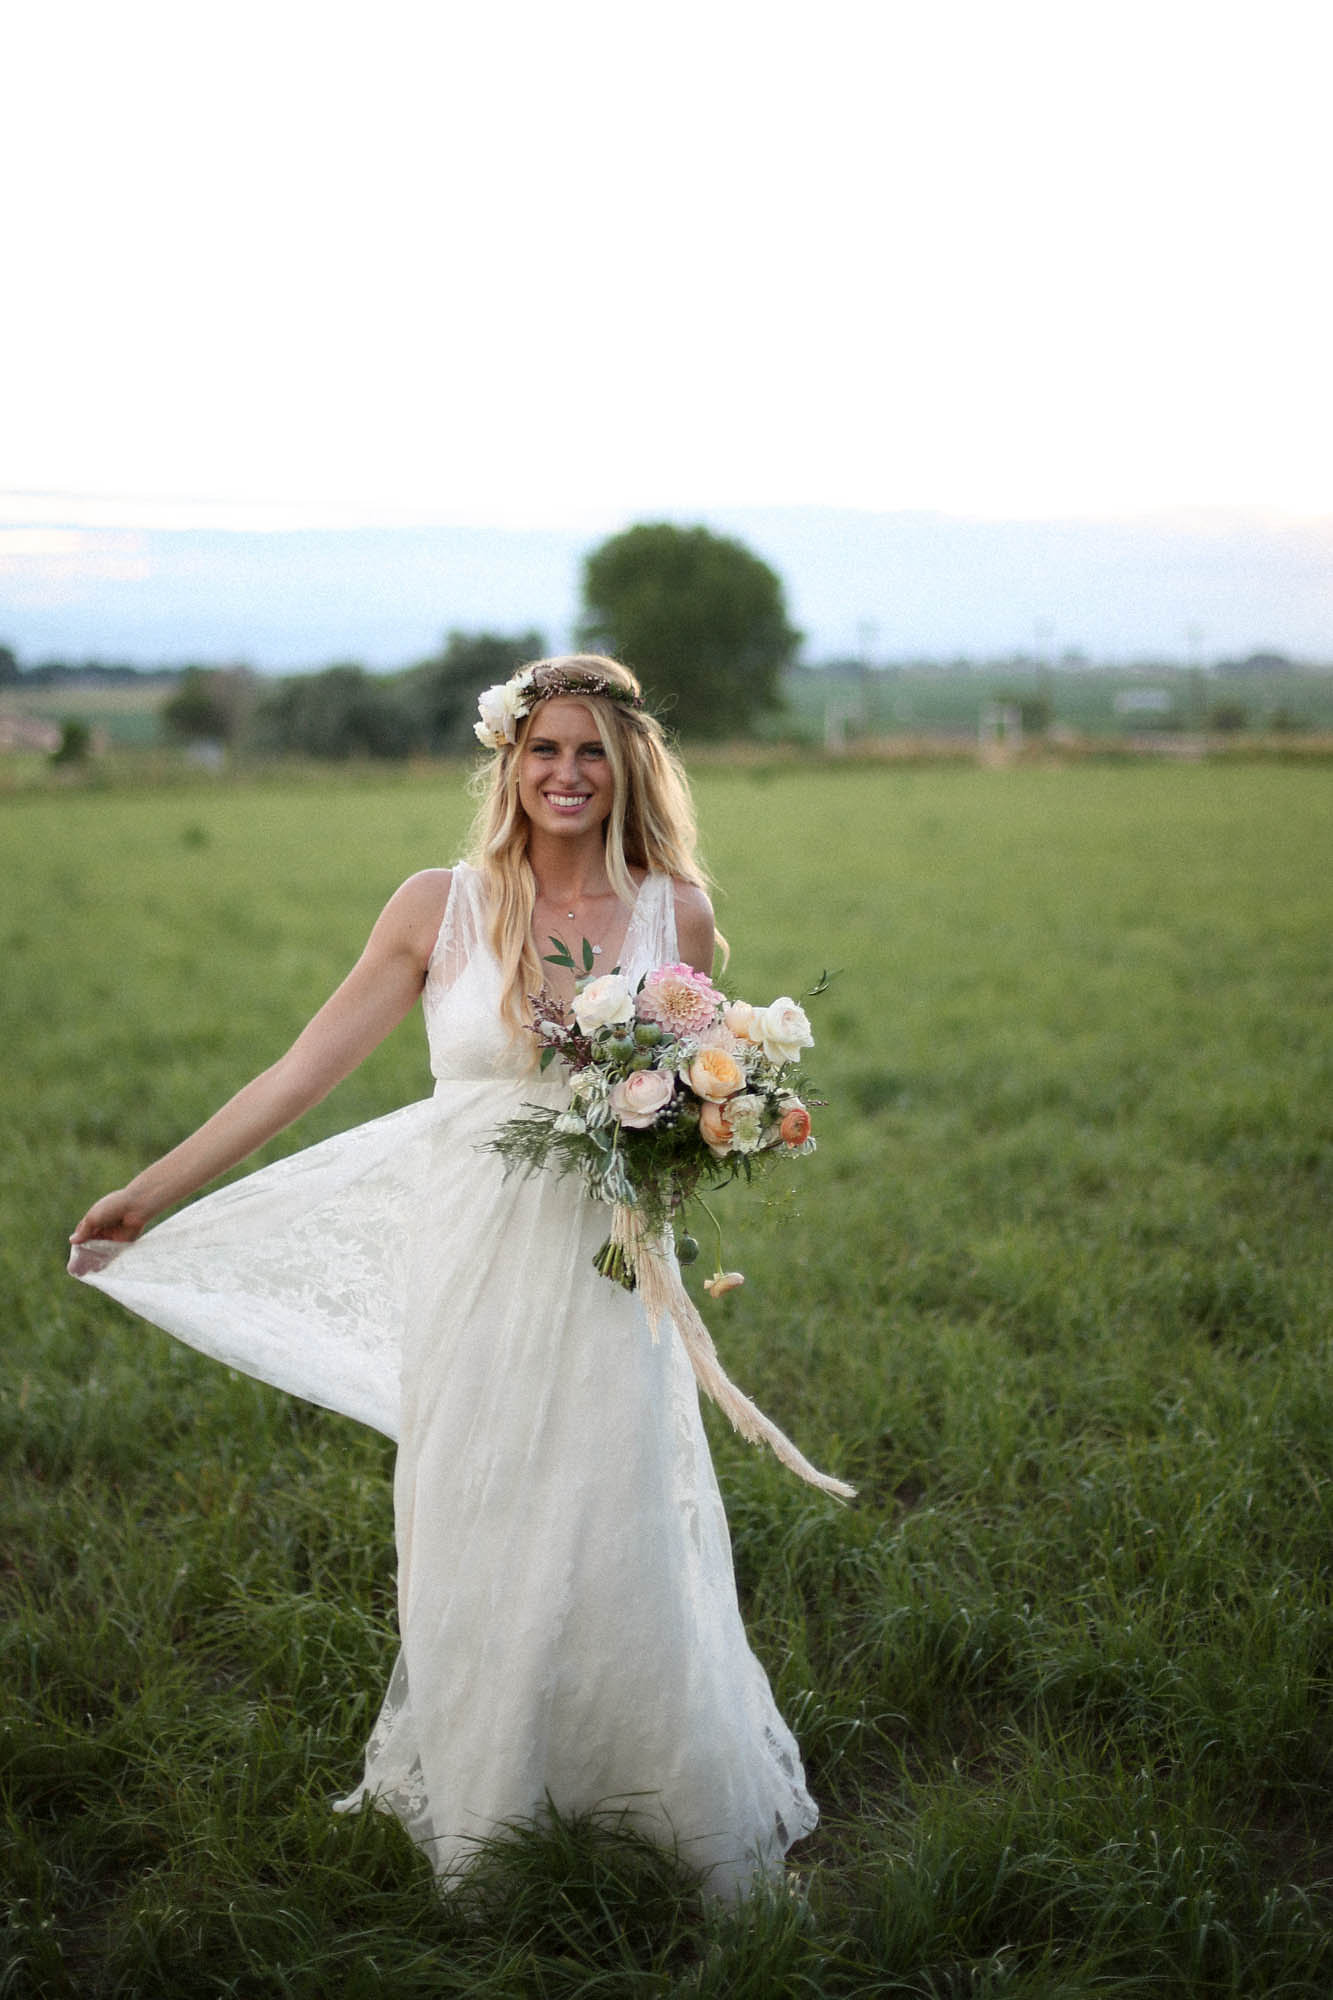 Colorado Backyard Bohemian Wedding | Charlie Brear wedding dress from Little White Dress Bridal Shop